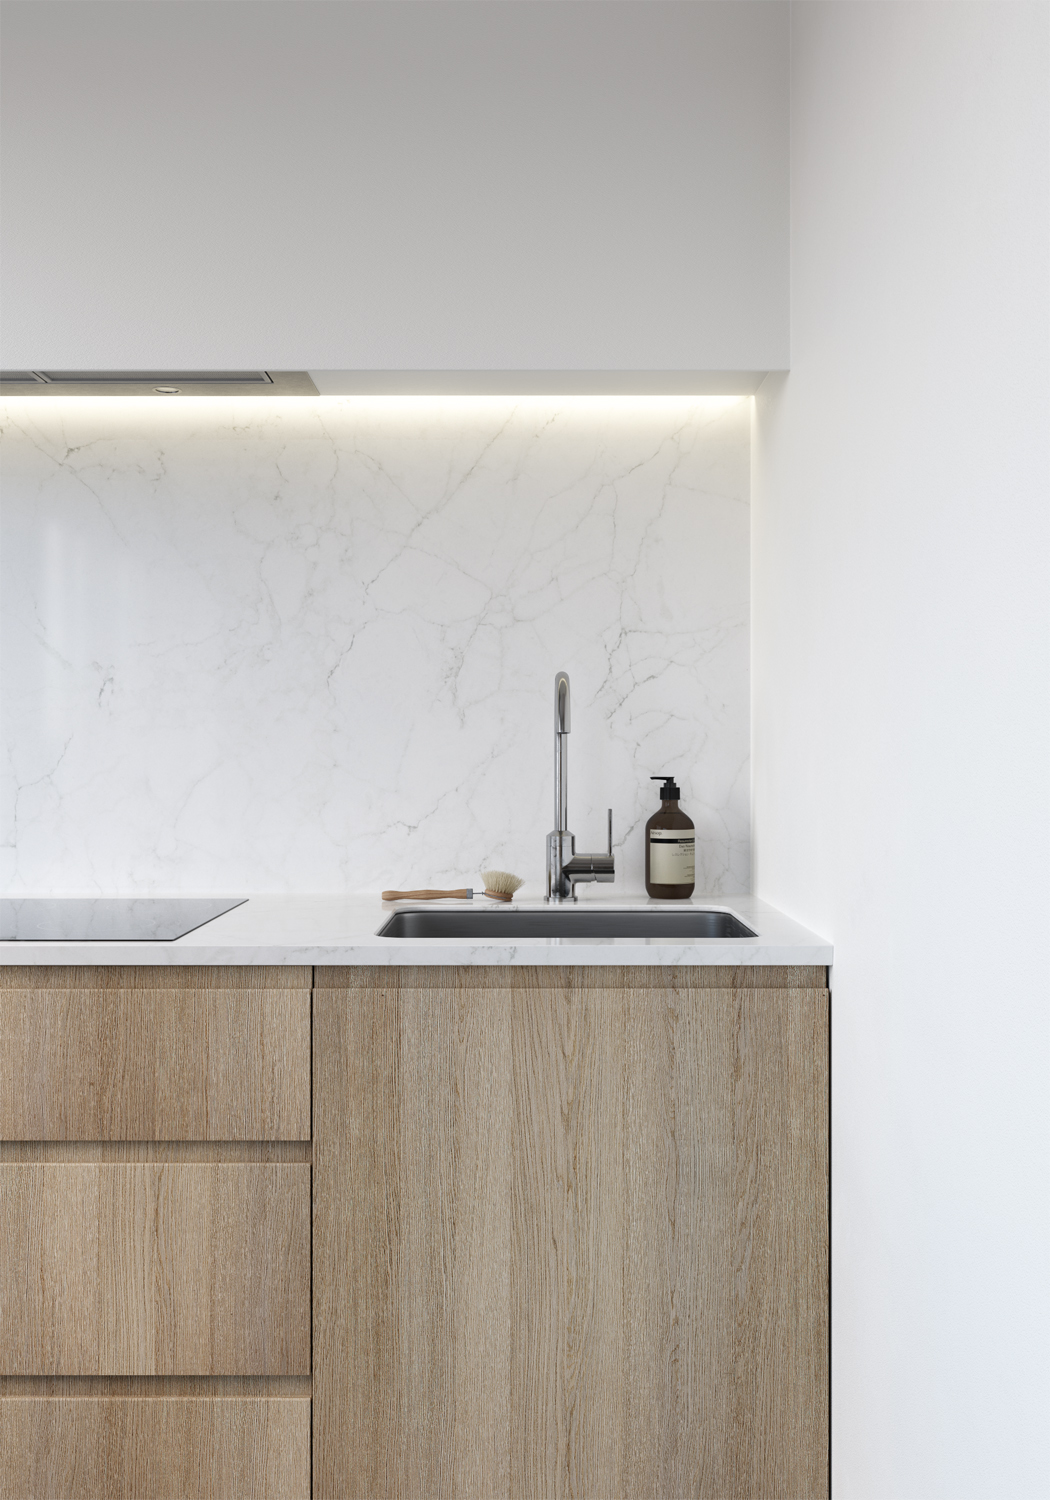 E design kitchen and dining area, 3d kitchen visualisation, e-design process, small space interior design, timber veneer cabinetry, marble slab backsplash, marble slab countertop,